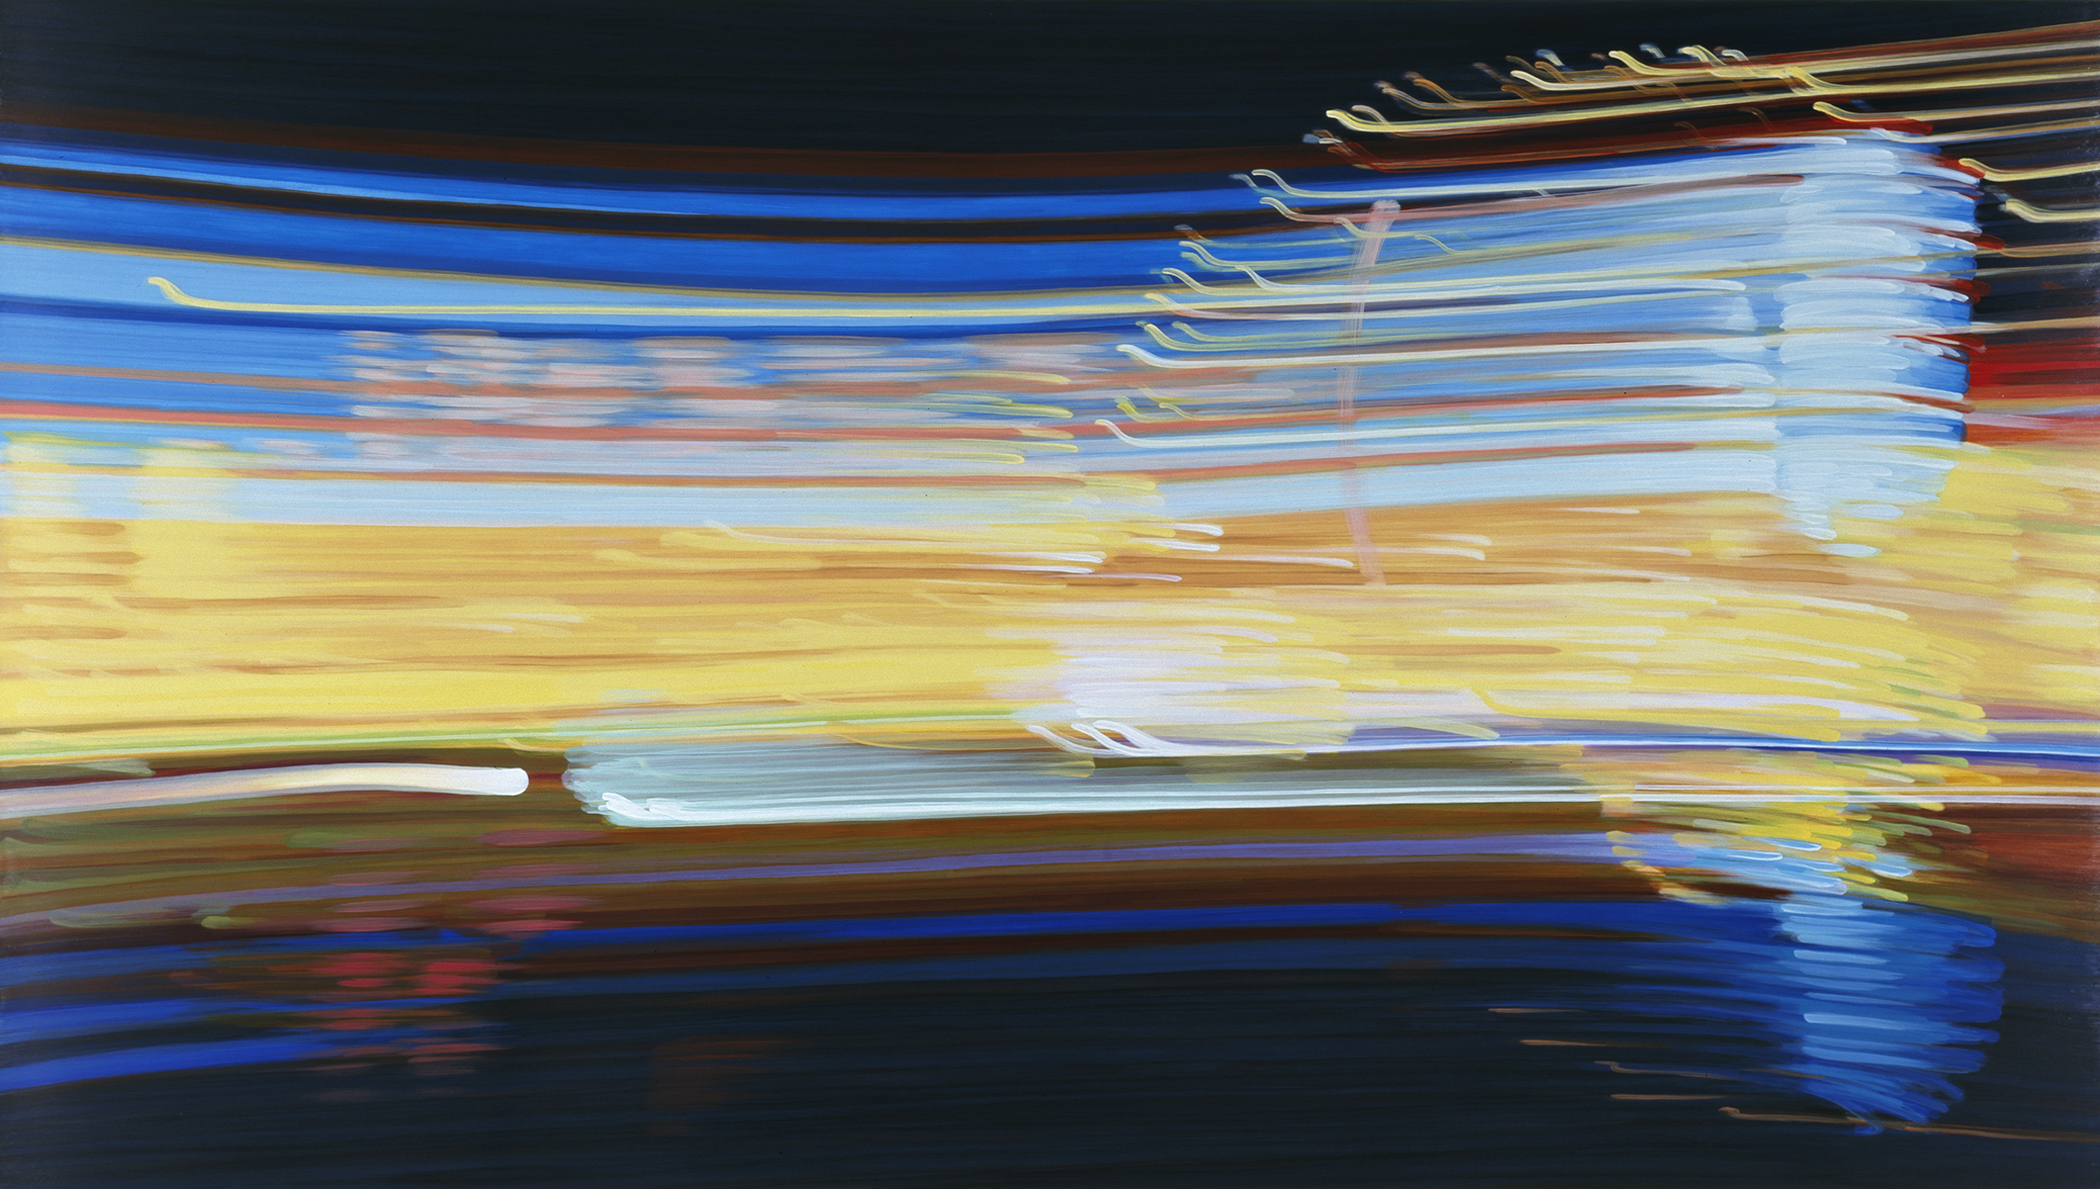 MidwayVII 2009 acrylic on board 46x82in by Contemporary Canadian Artist Katharine Harvey